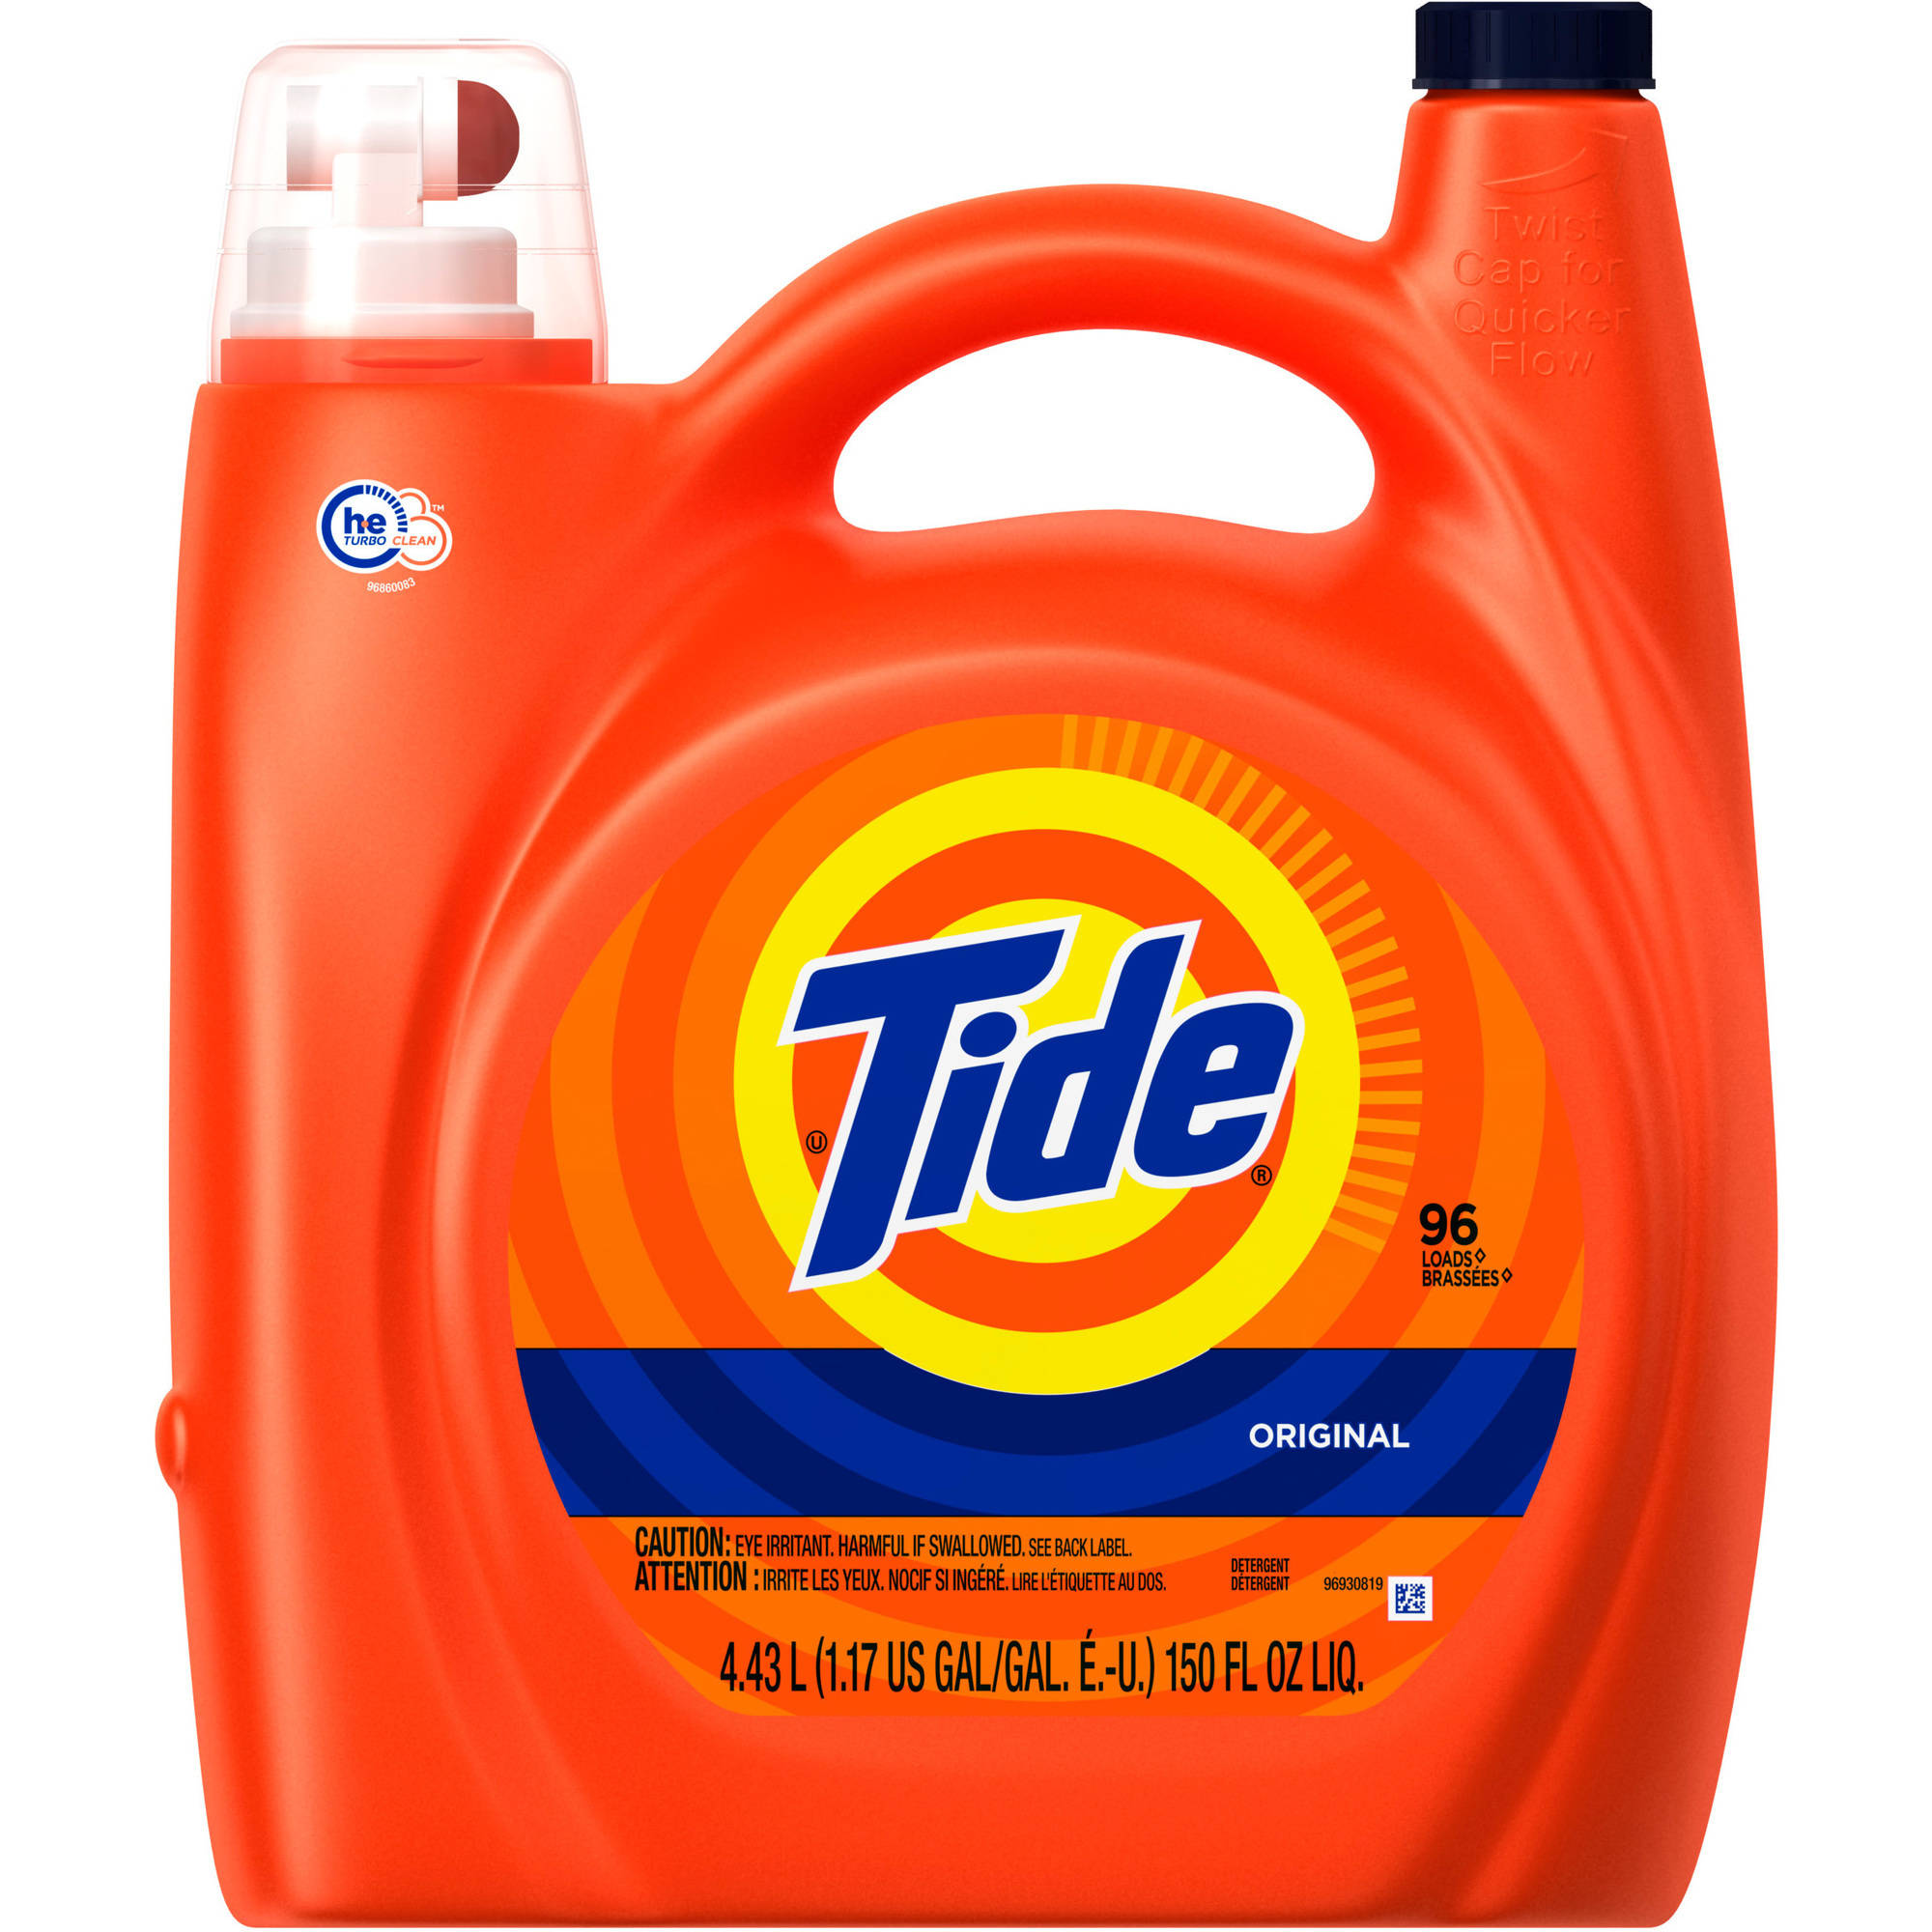 Tide Original Scent HE Turbo Clean Liquid Laundry Detergent, 96 Loads 150 oz